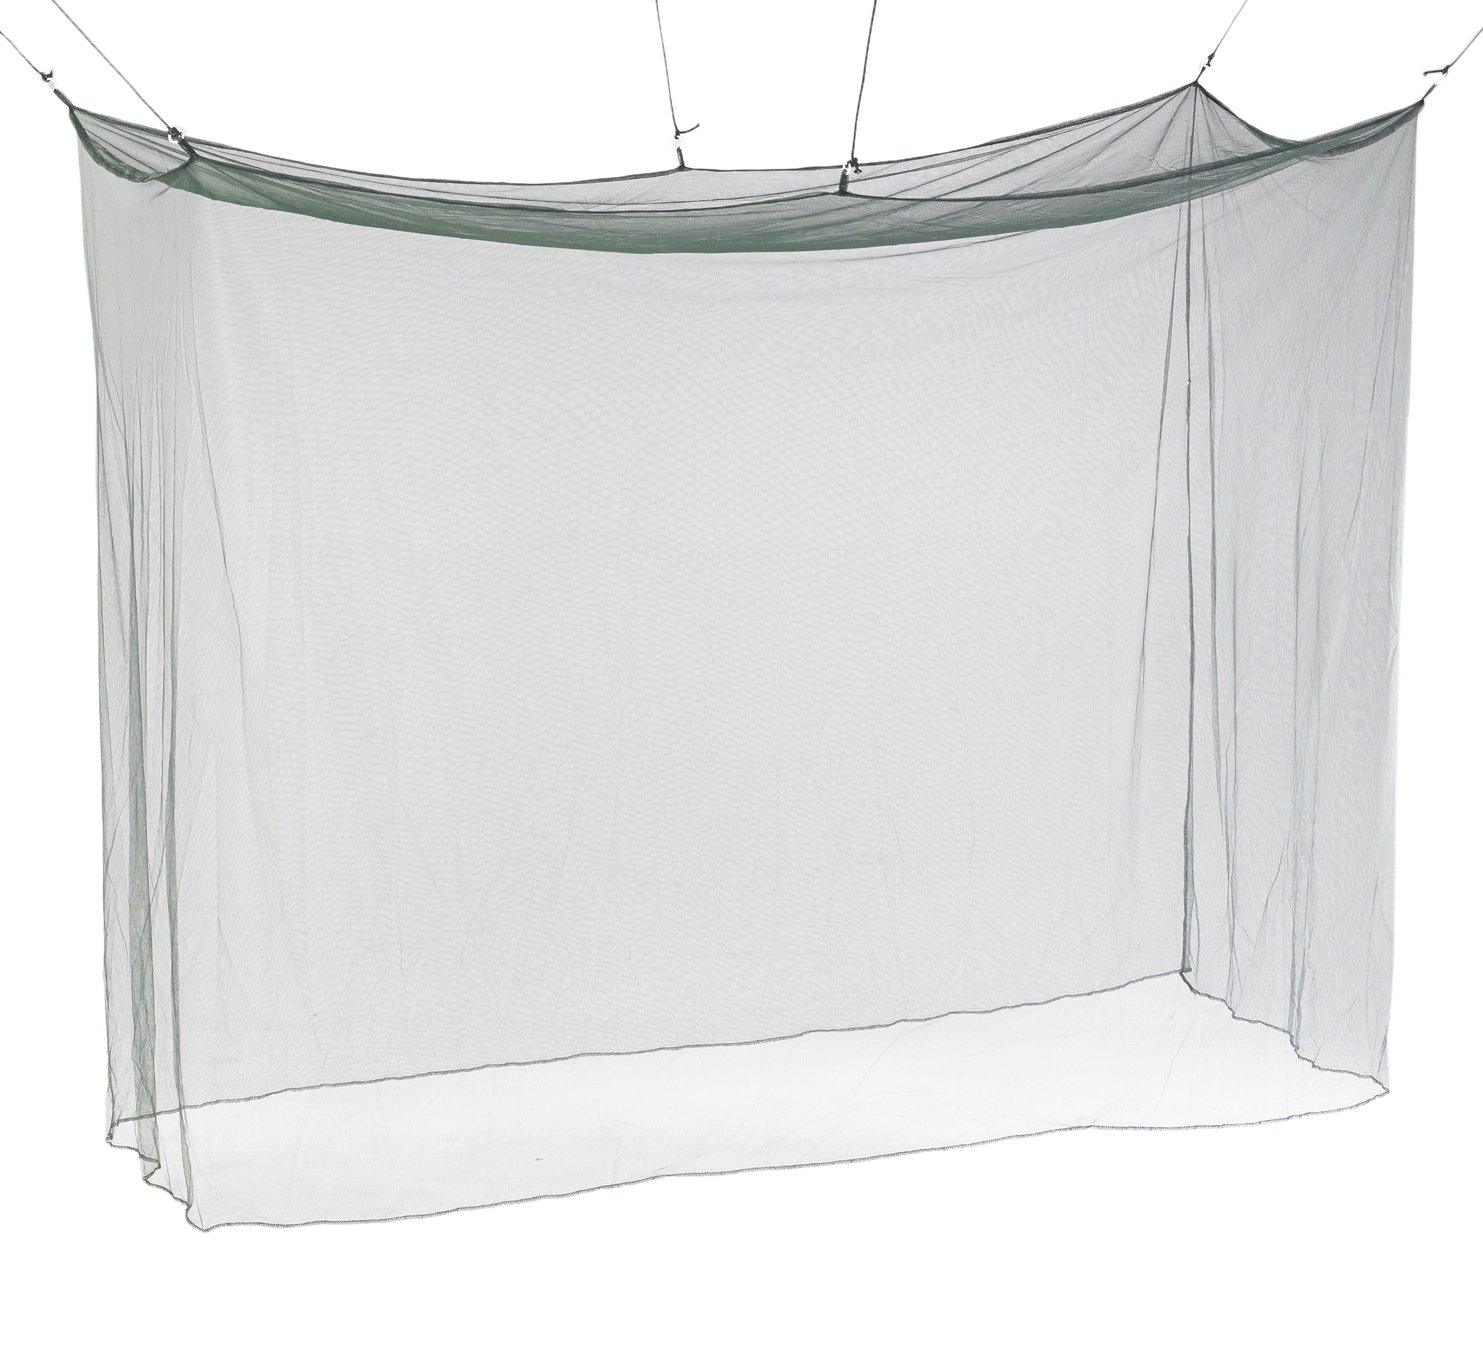 Atwater Carey Mosquito Net Treated with Insect Shield Permethrin Bug Repellent, Hanging Screen Single Cot Net